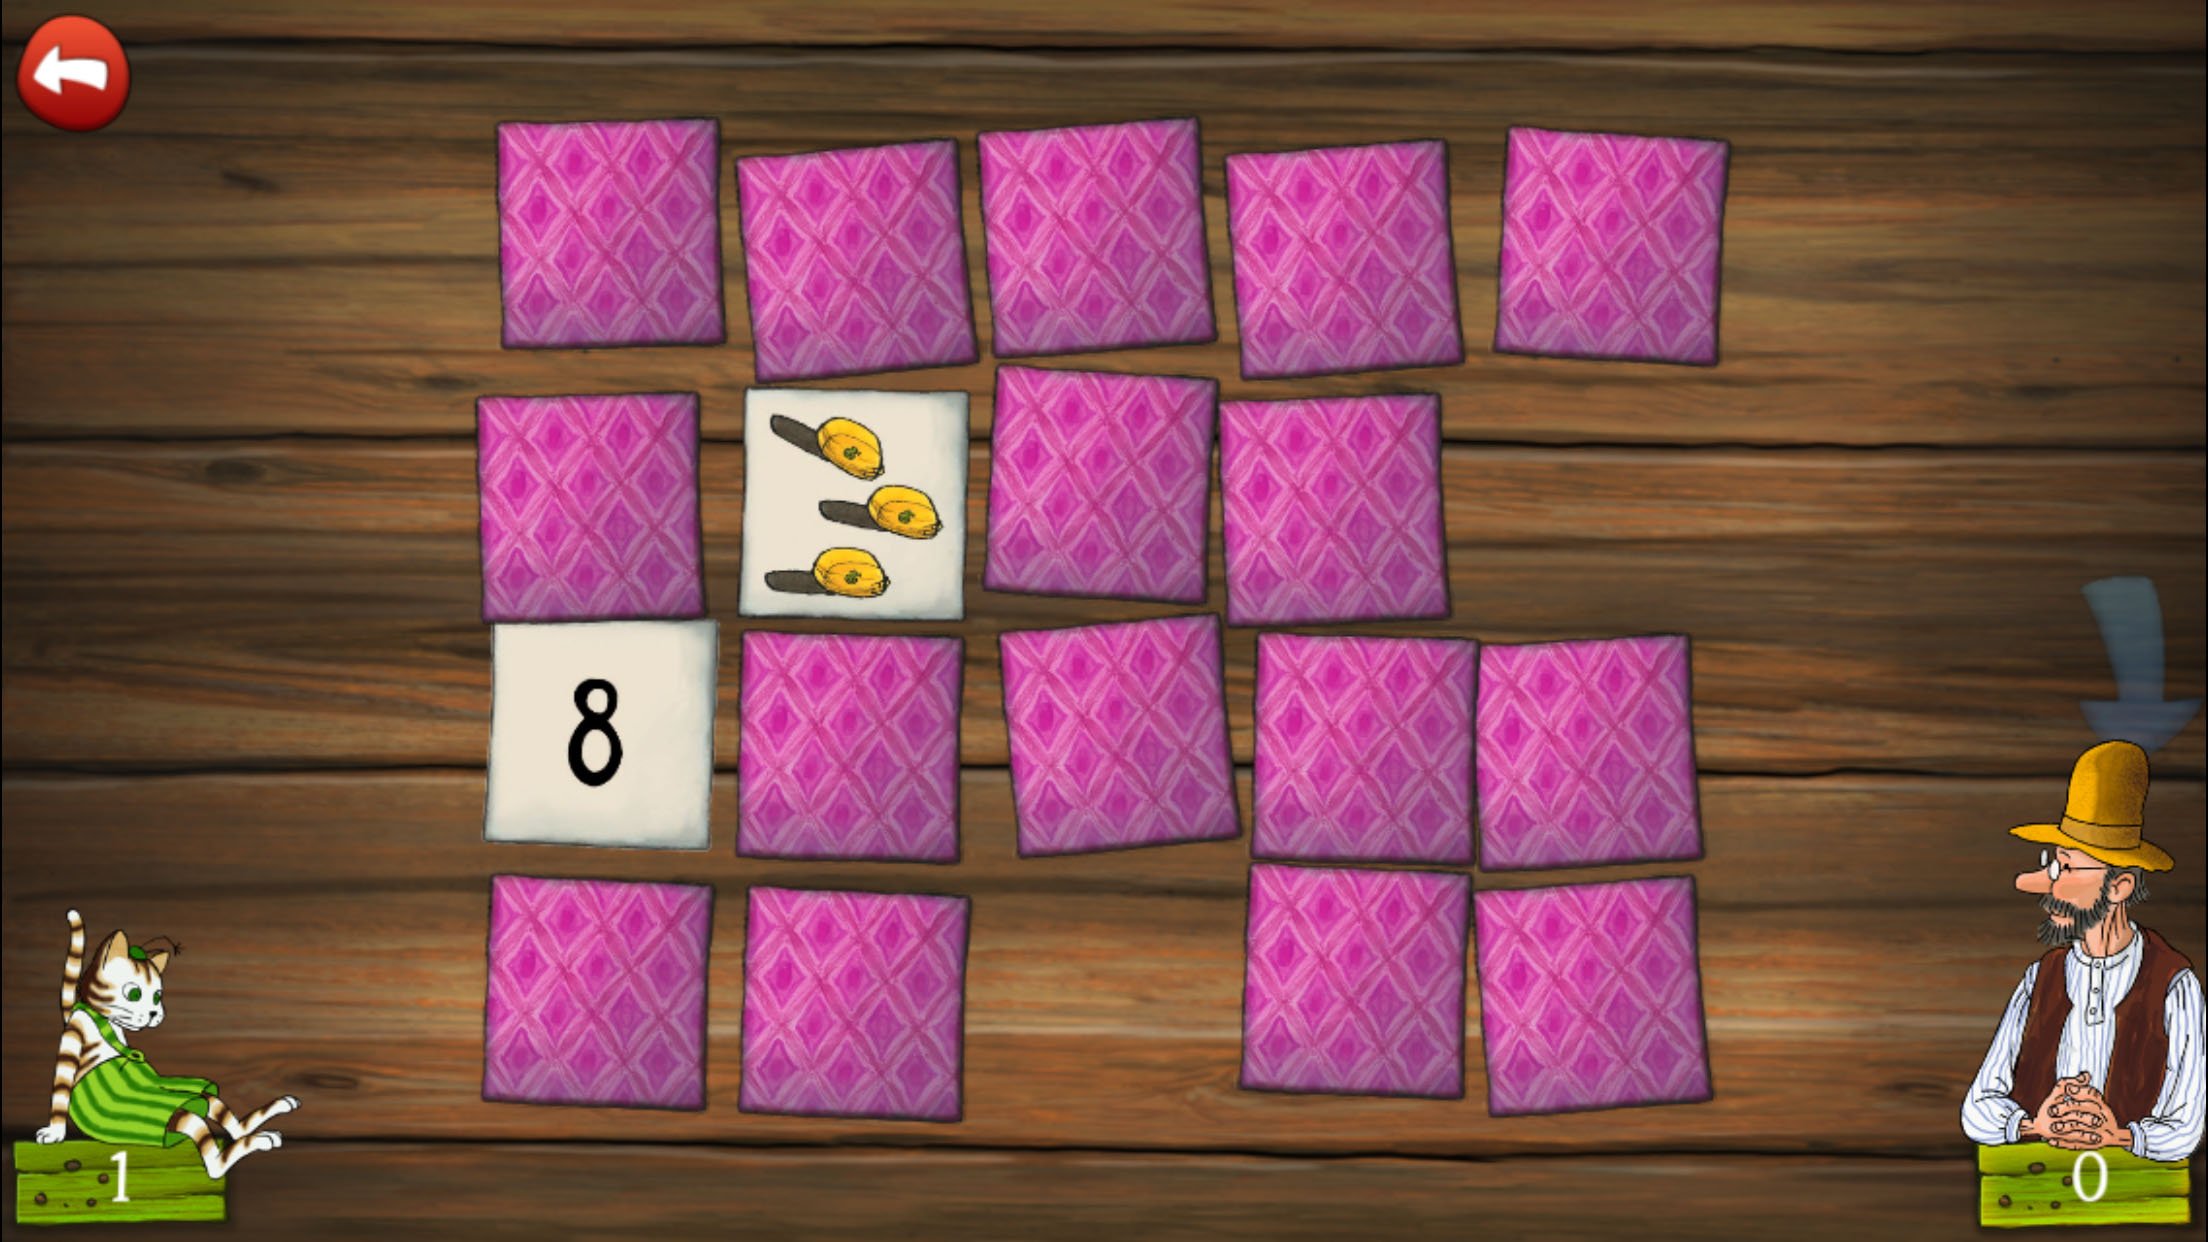 Img0300g logic memory and the exciting memory memory play by yourself with a friend or against pettson with three different difficulty levels the game suits solutioingenieria Choice Image